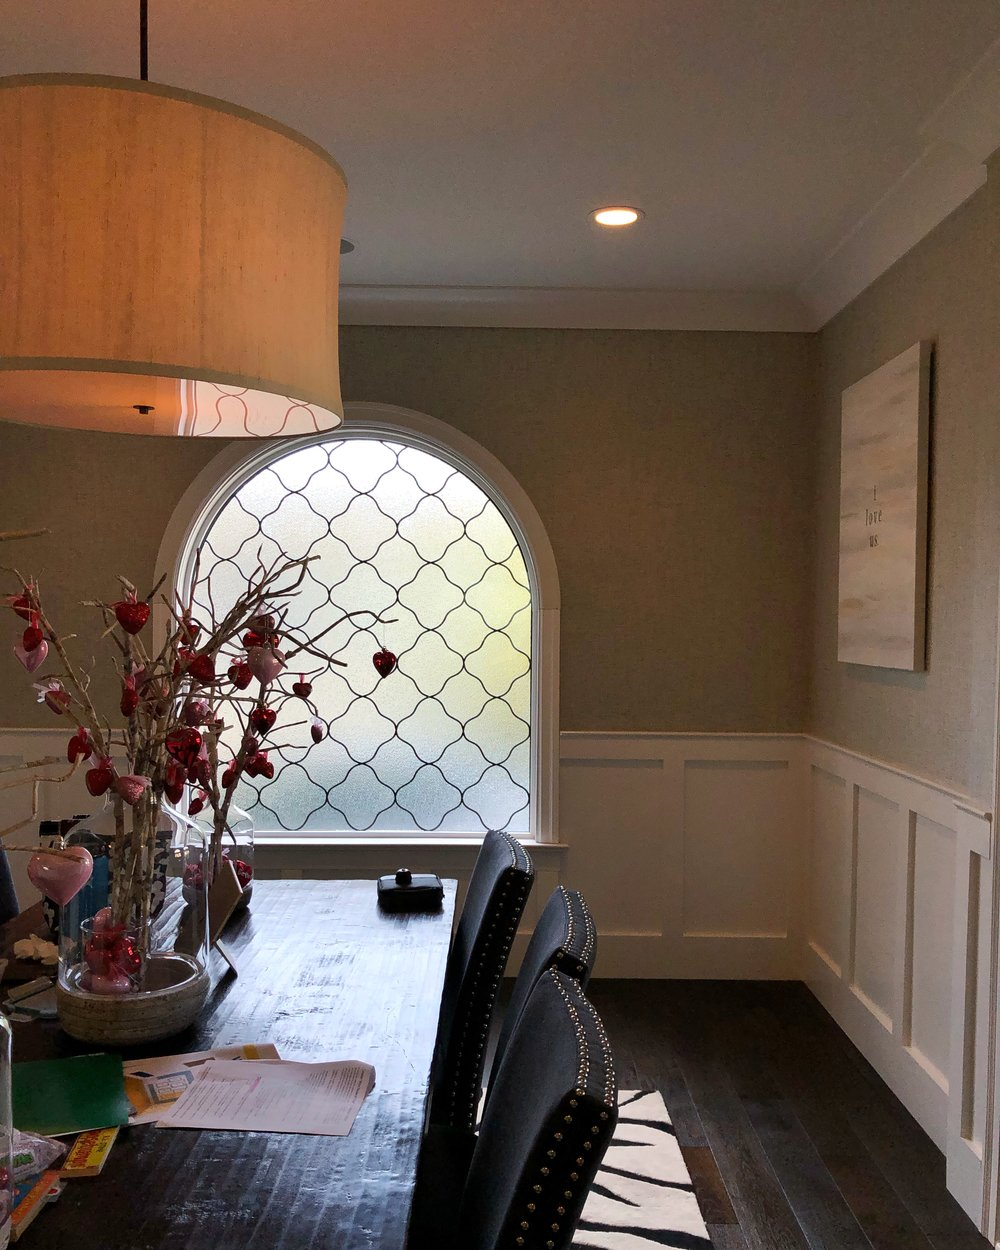 leaded glass stained glass art glass bay area custom design legacy glass studios design triple insulated crystal ice clear texture pattern quatrefoil obscurity privacy dining room.jpg